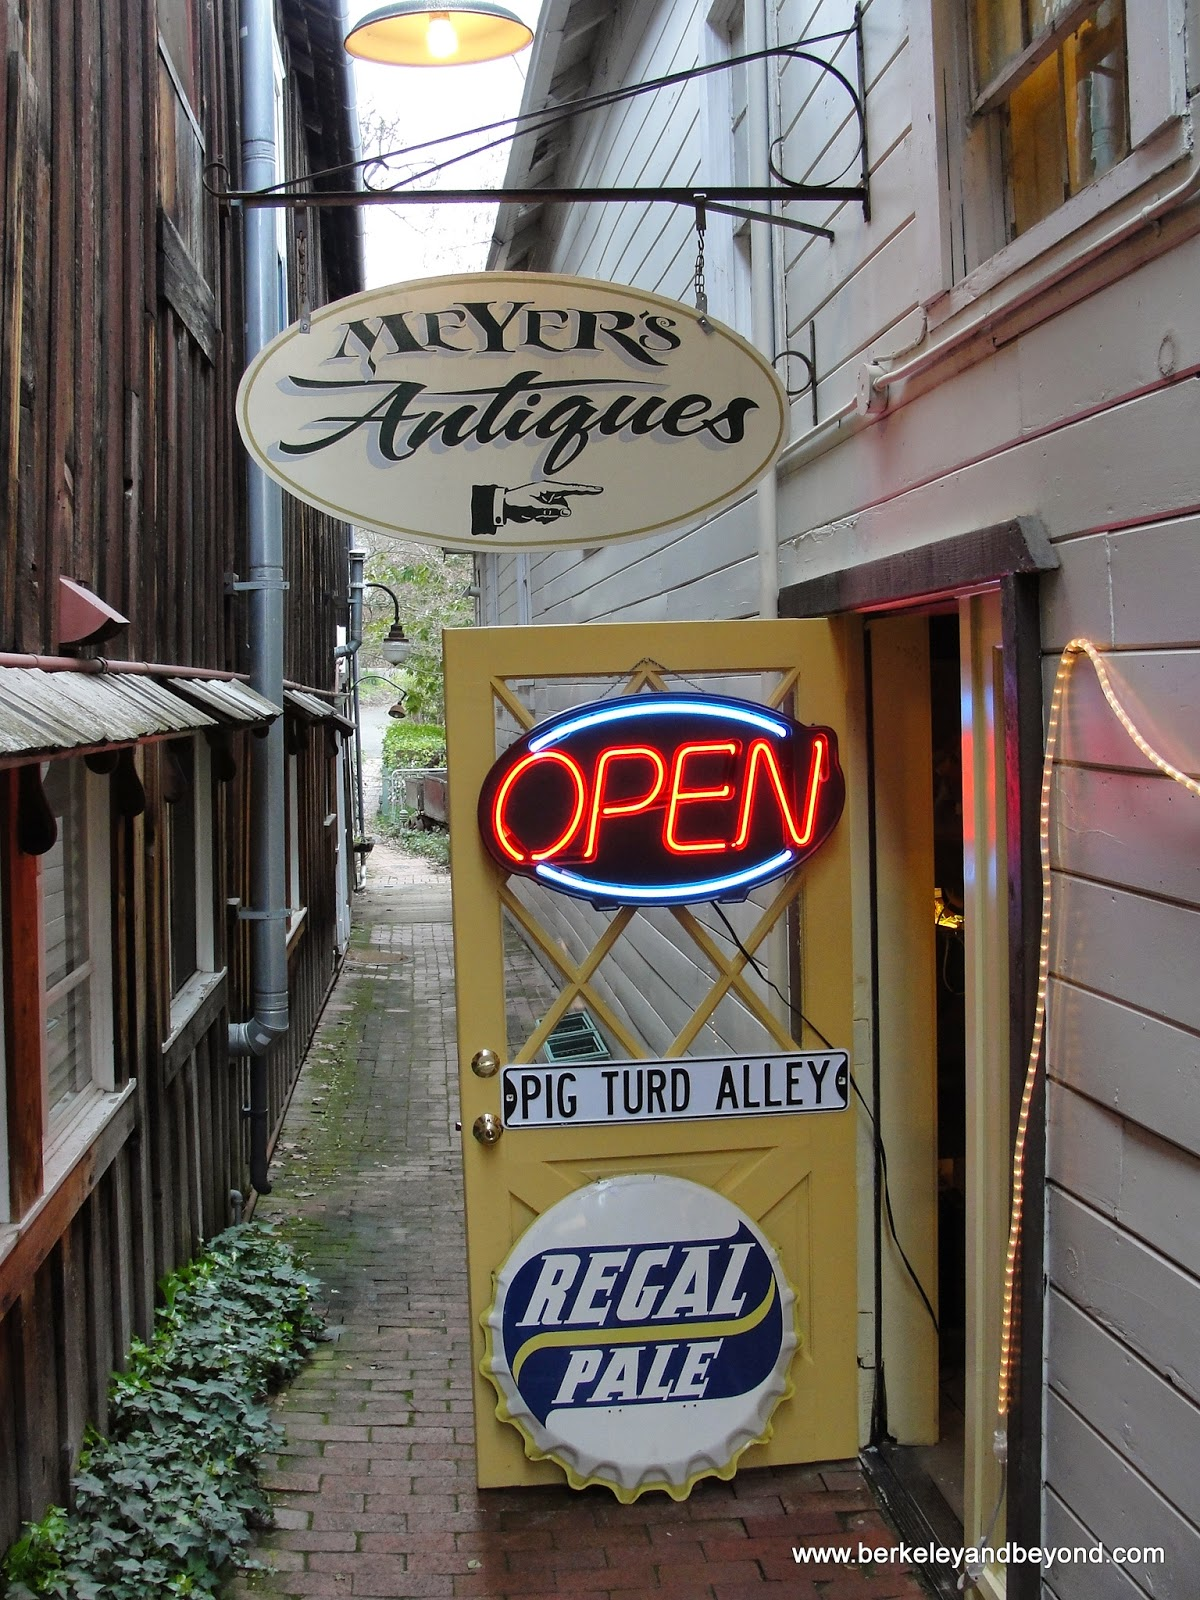 Meyer's Antiques in Pig Turd Alley in Amador City, California